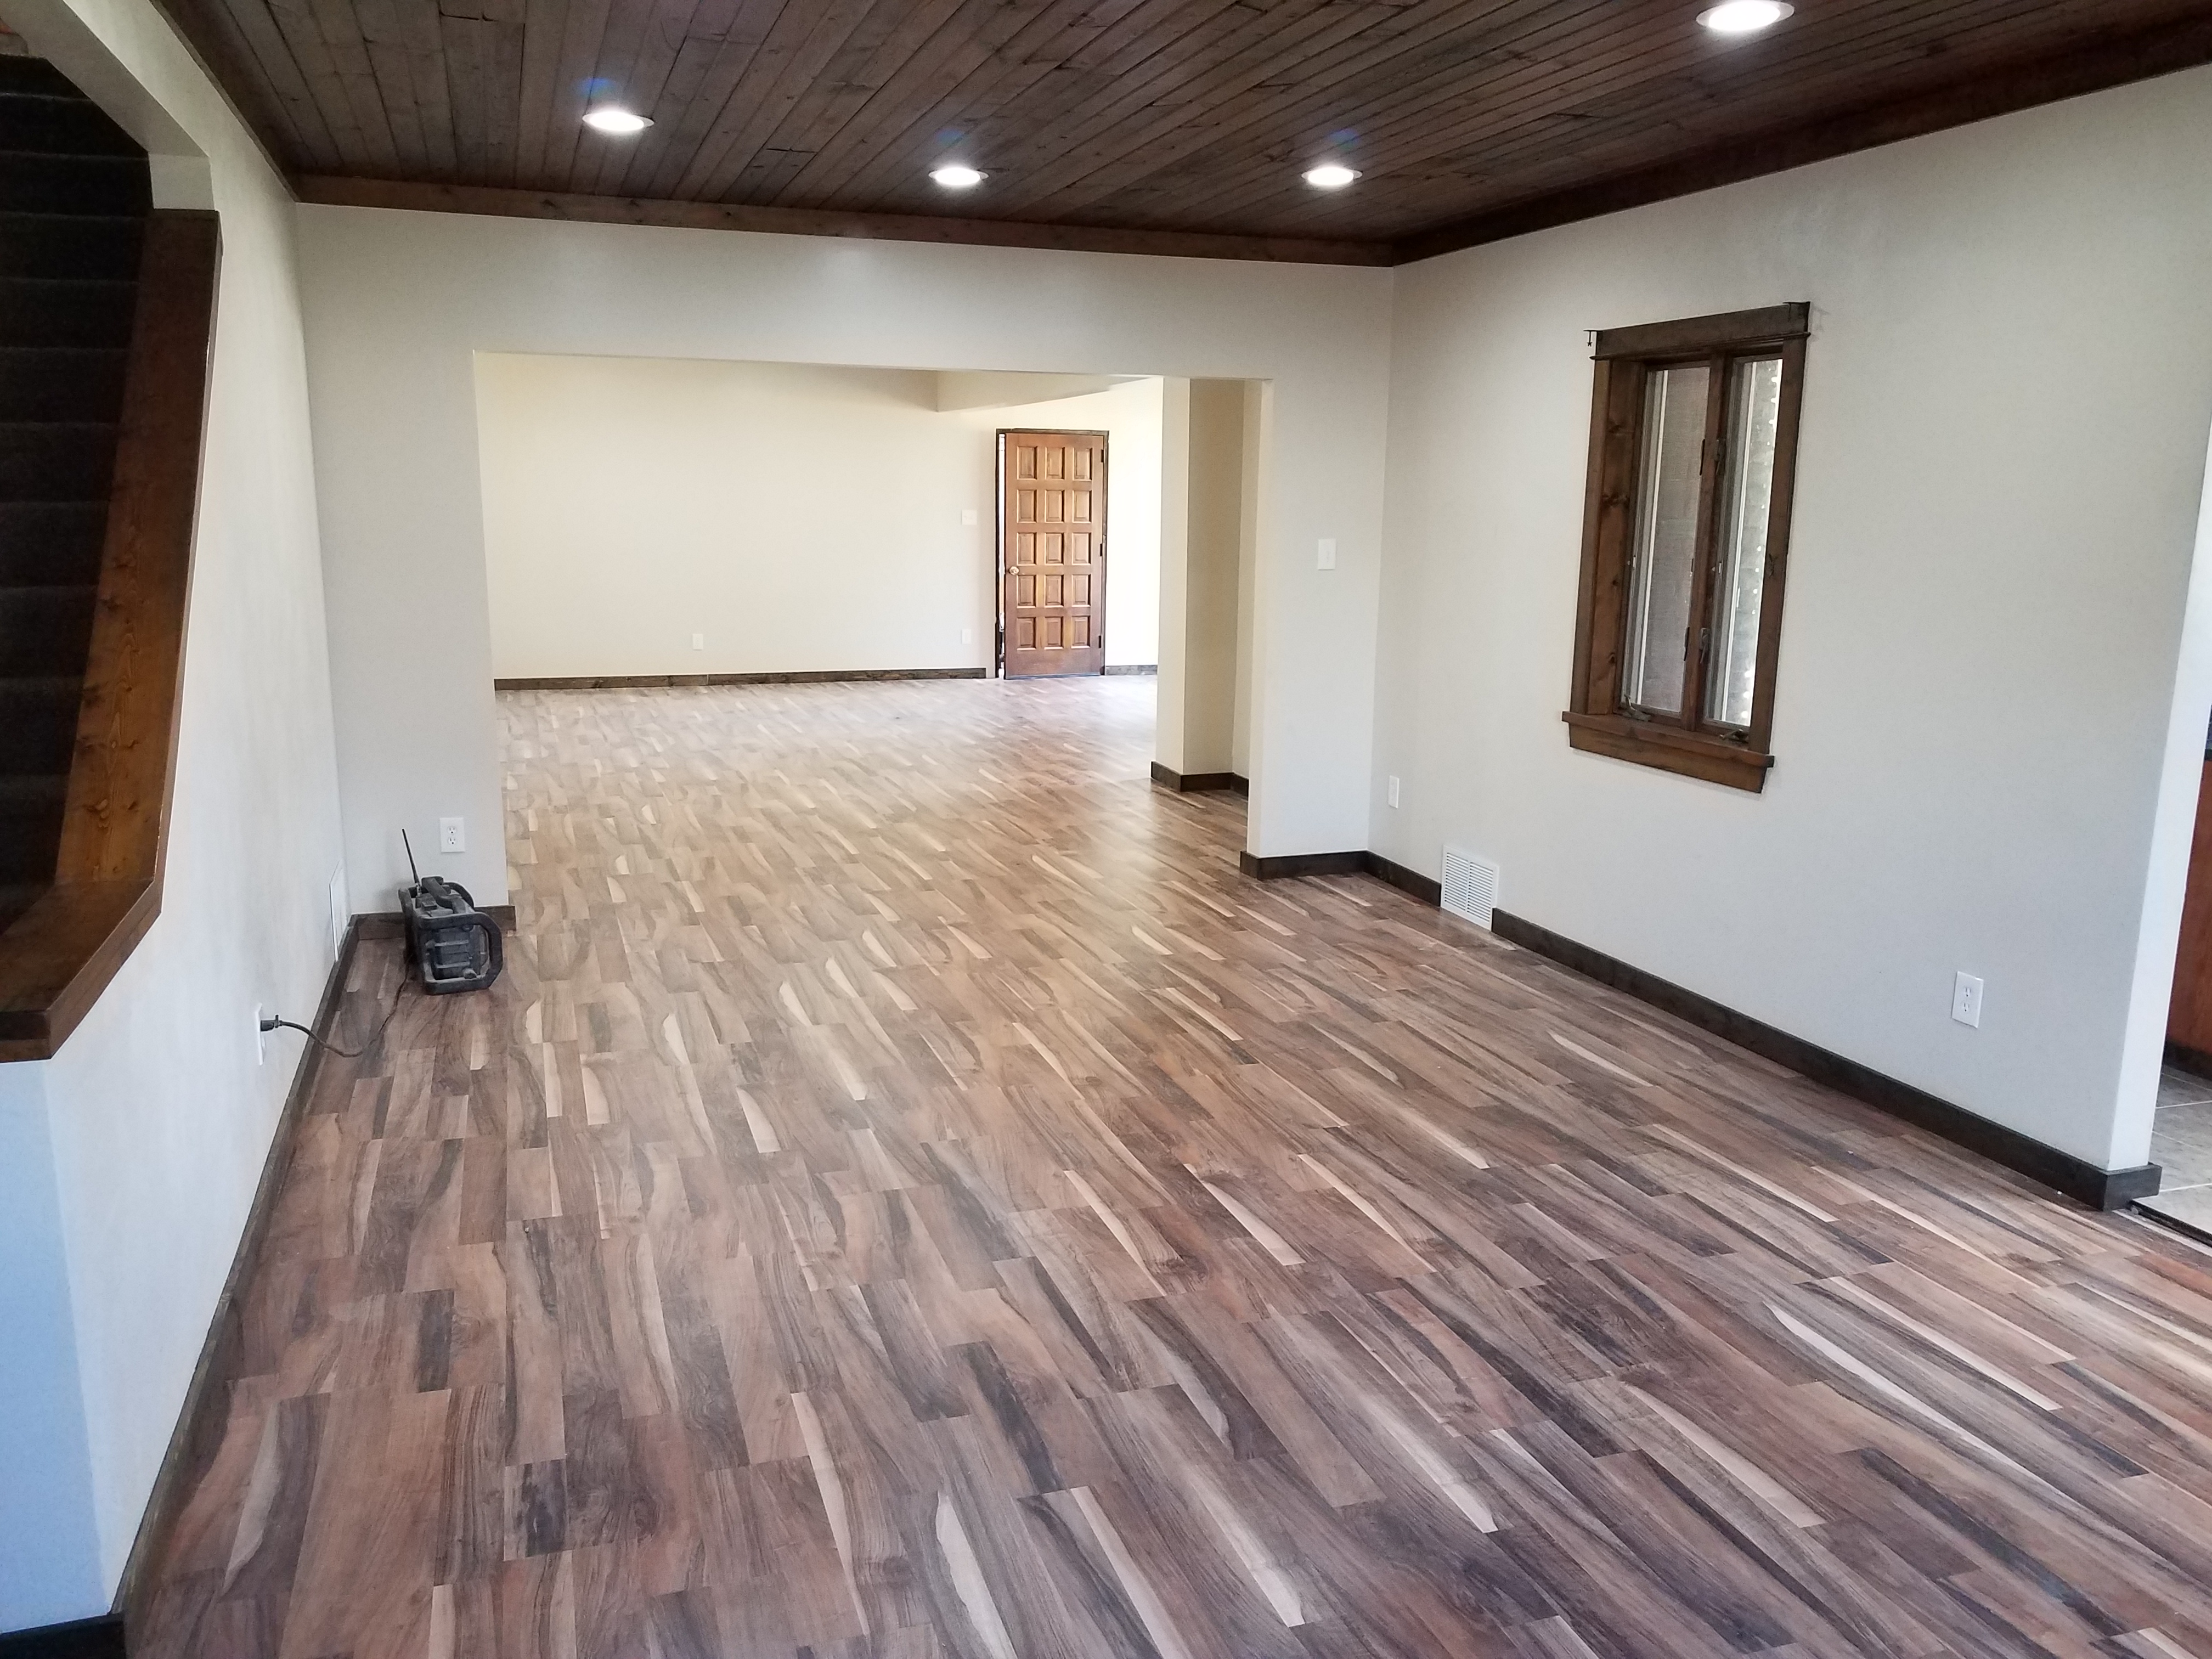 About Home Renovation